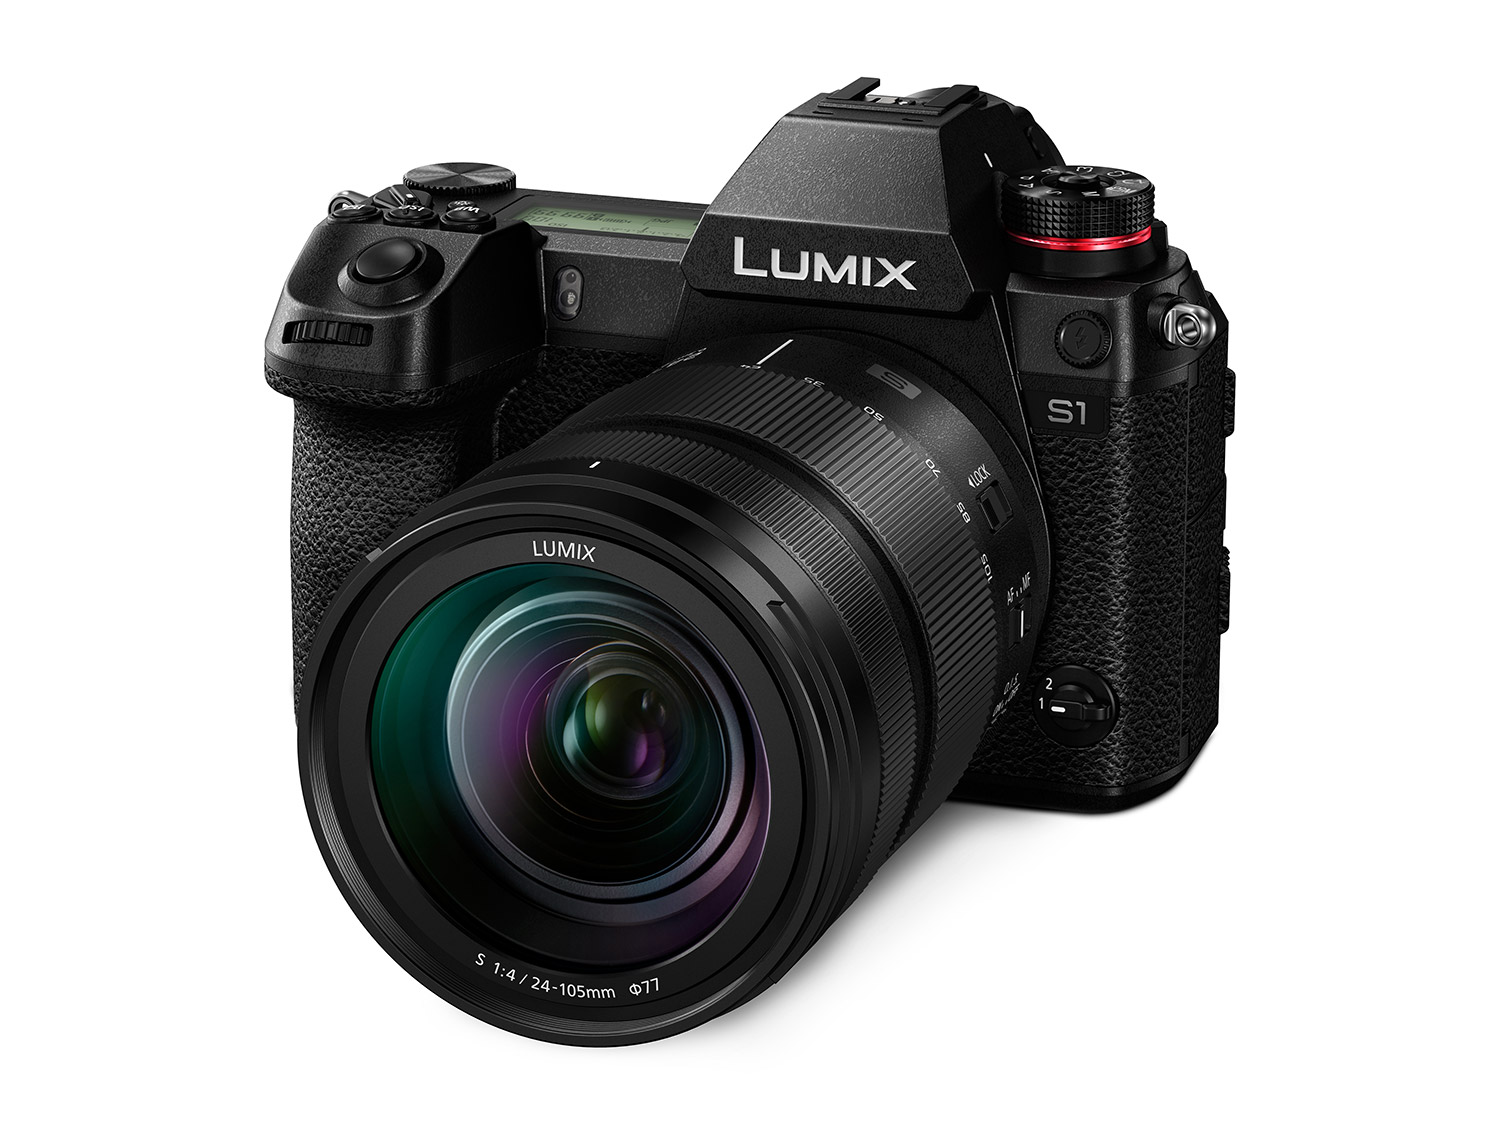 https://i0.wp.com/digital-photography-school.com/wp-content/uploads/2019/03/panasonic-full-frame-lumix-s1-kitslant-679493.jpg?resize=1500%2C1124&ssl=1